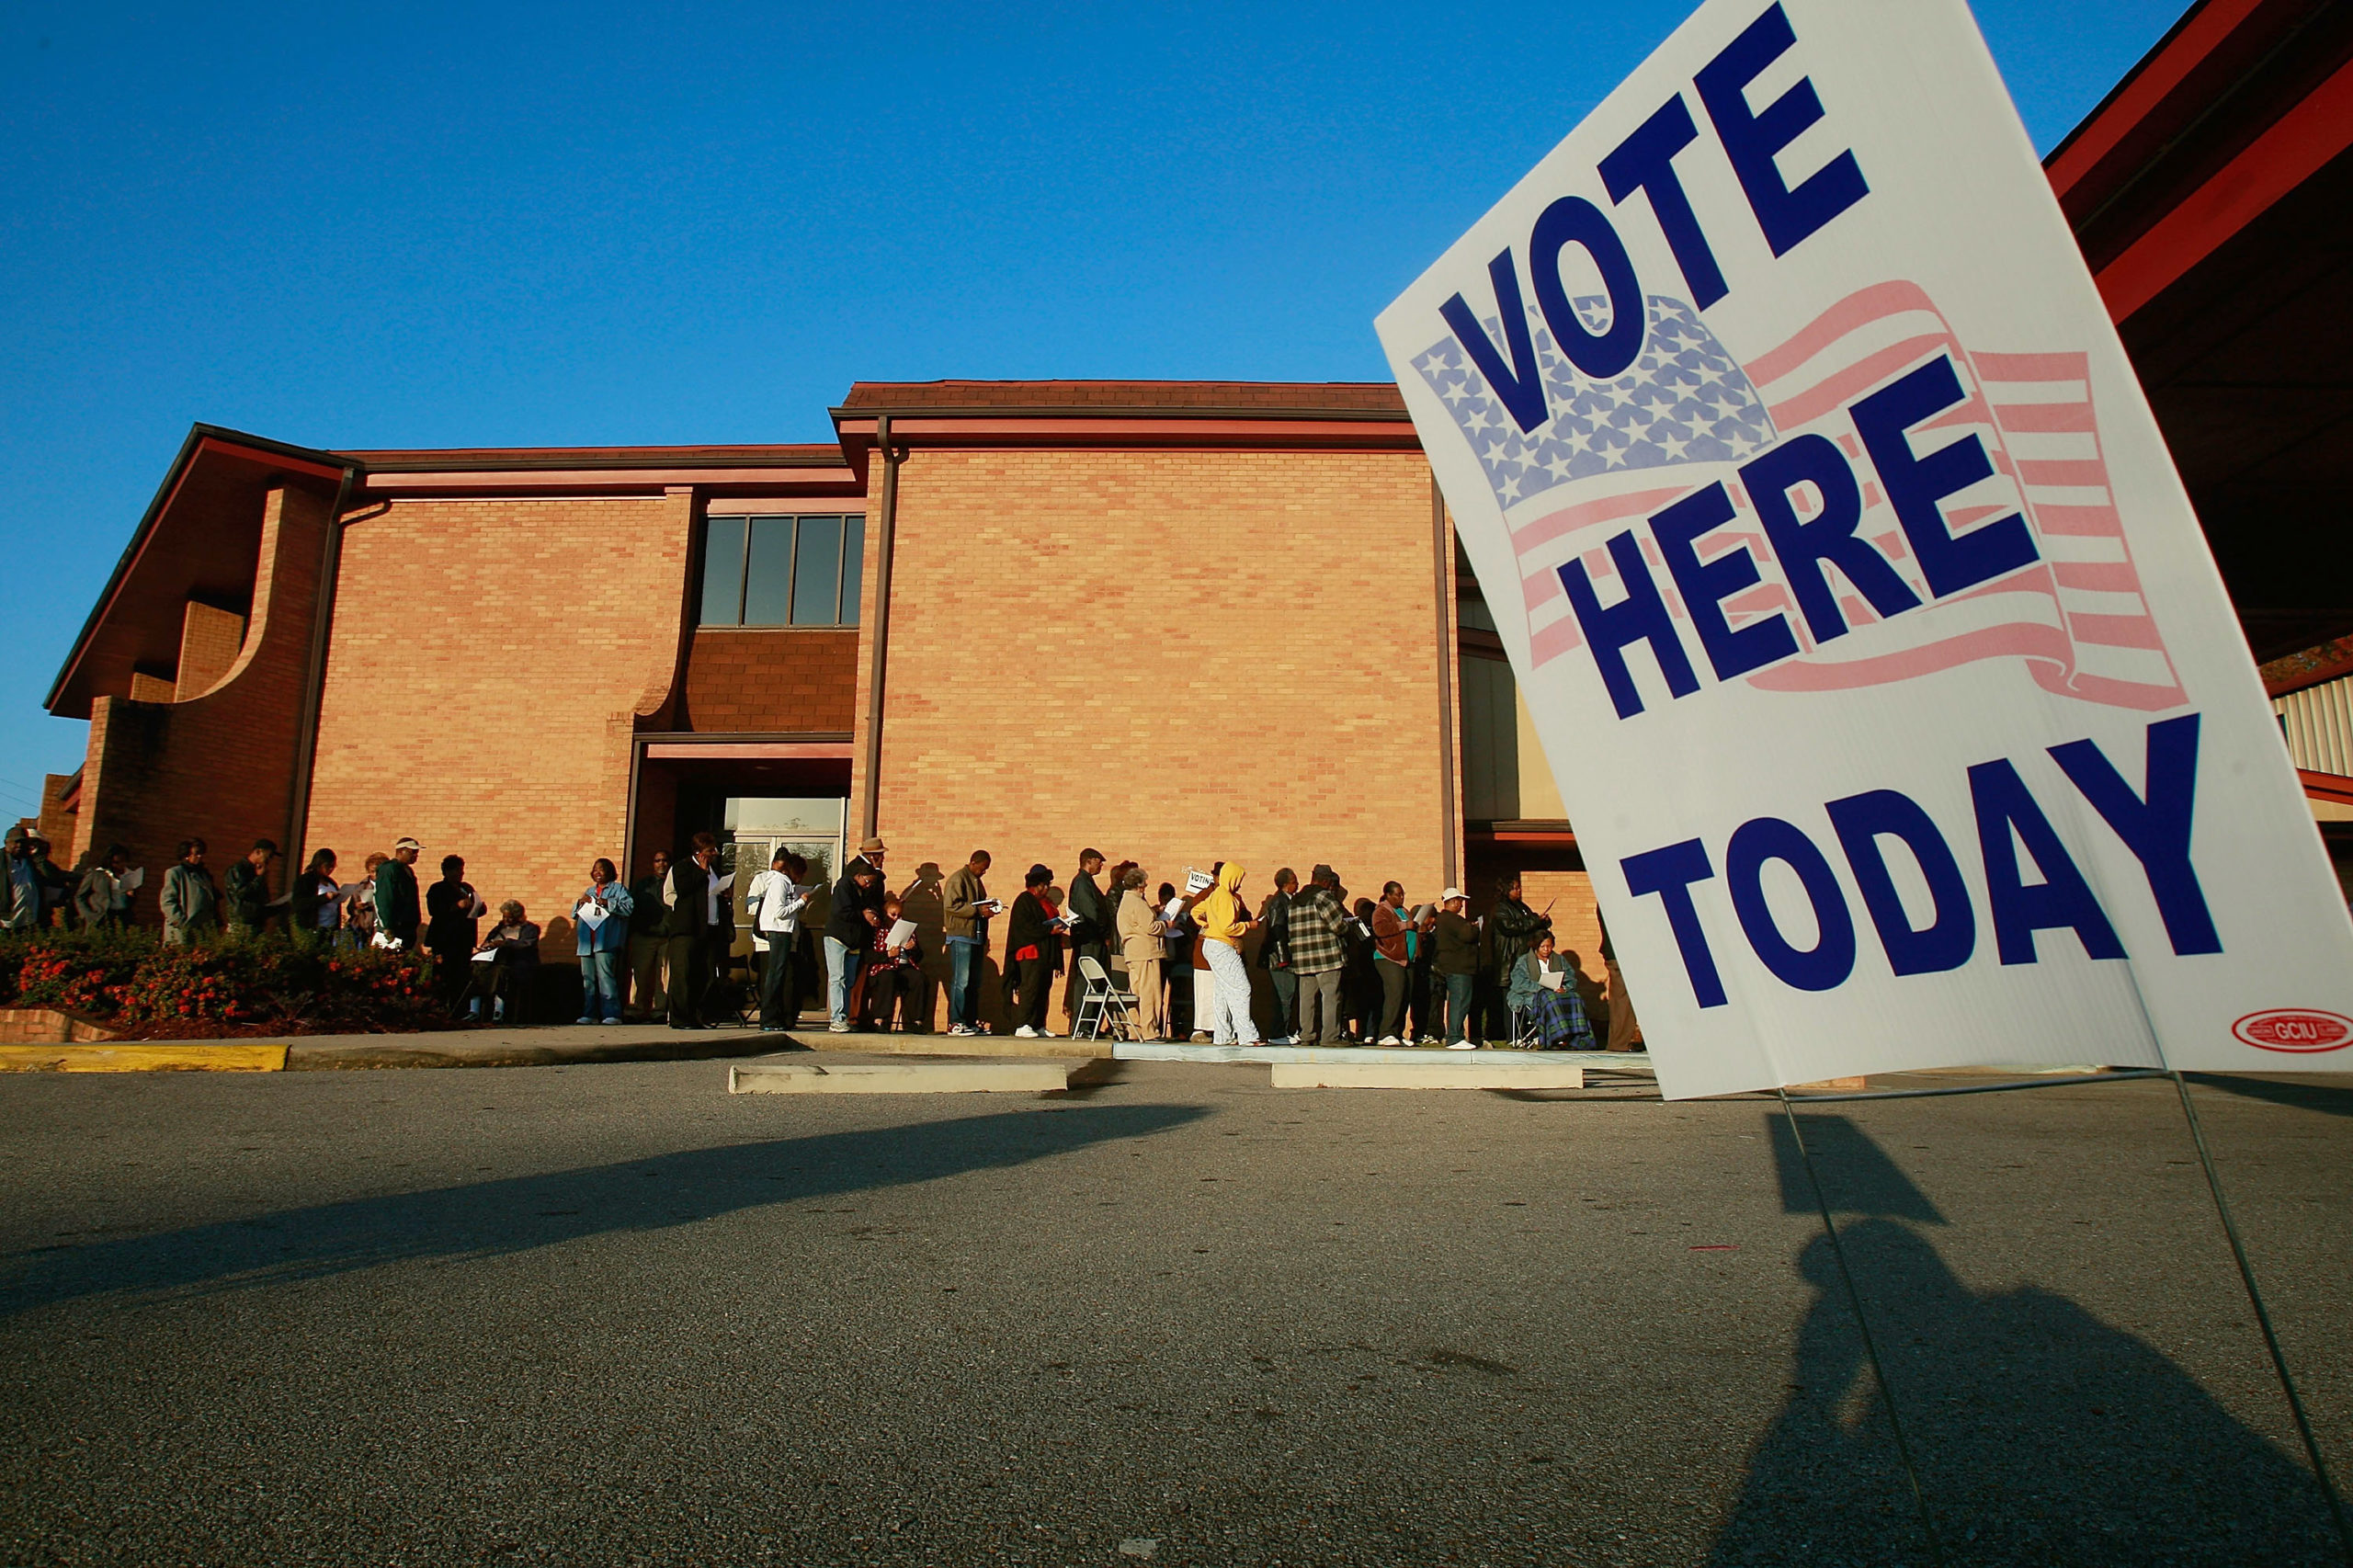 African-Americans line up to vote outside Bethel Missionary Baptist Church in the presidential election November 4, 2008 in Birmingham, Alabama. Birmingham, along with Selma and Montgomery, were touchstones in the civil rights movement where Dr. Martin Luther King Jr. led massive protests which eventually led to the Voting Rights Act of 1965 ending voter disfranchisement against African-Americans. Americans are voting in the first presidential election featuring an African-American candidate, Democratic contender Sen. Barack Obama, who is running against Republican Sen. John McCain. (Photo by Mario Tama/Getty Images)